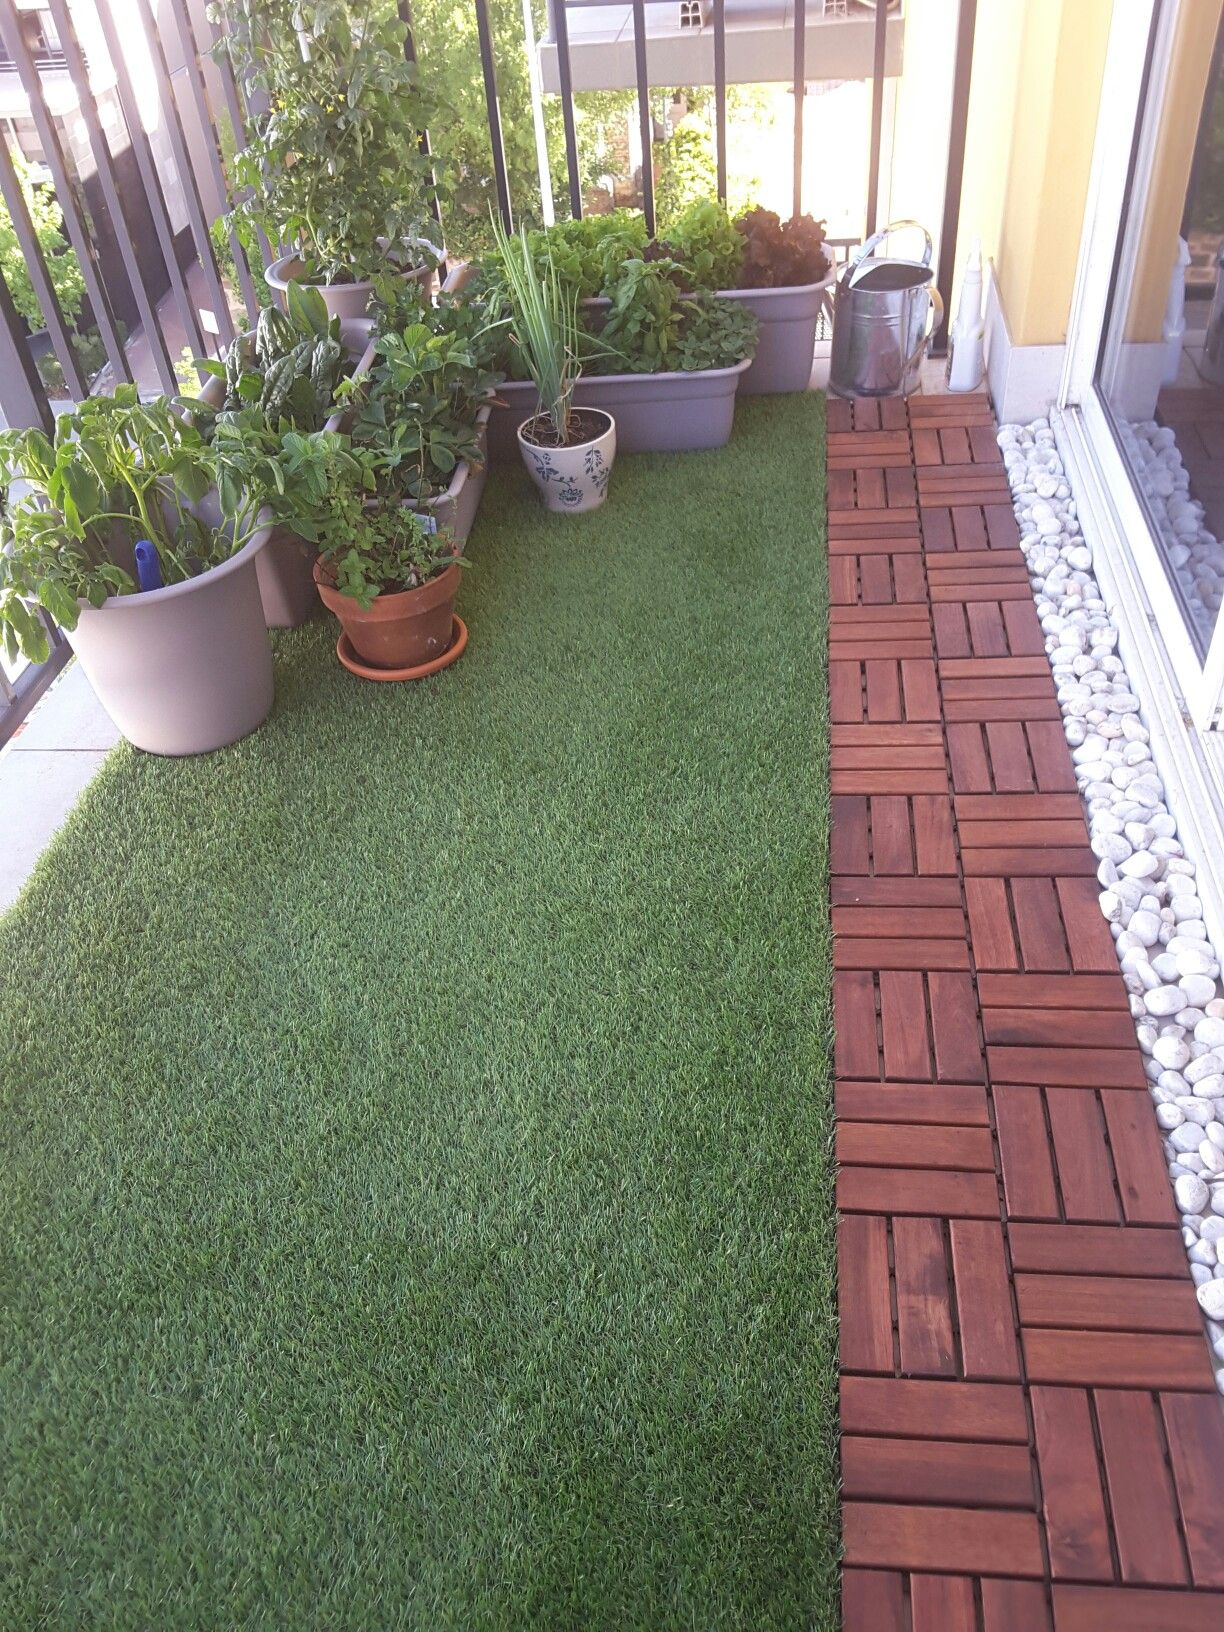 Balcony with artificial grass, decking and plants. Perfect